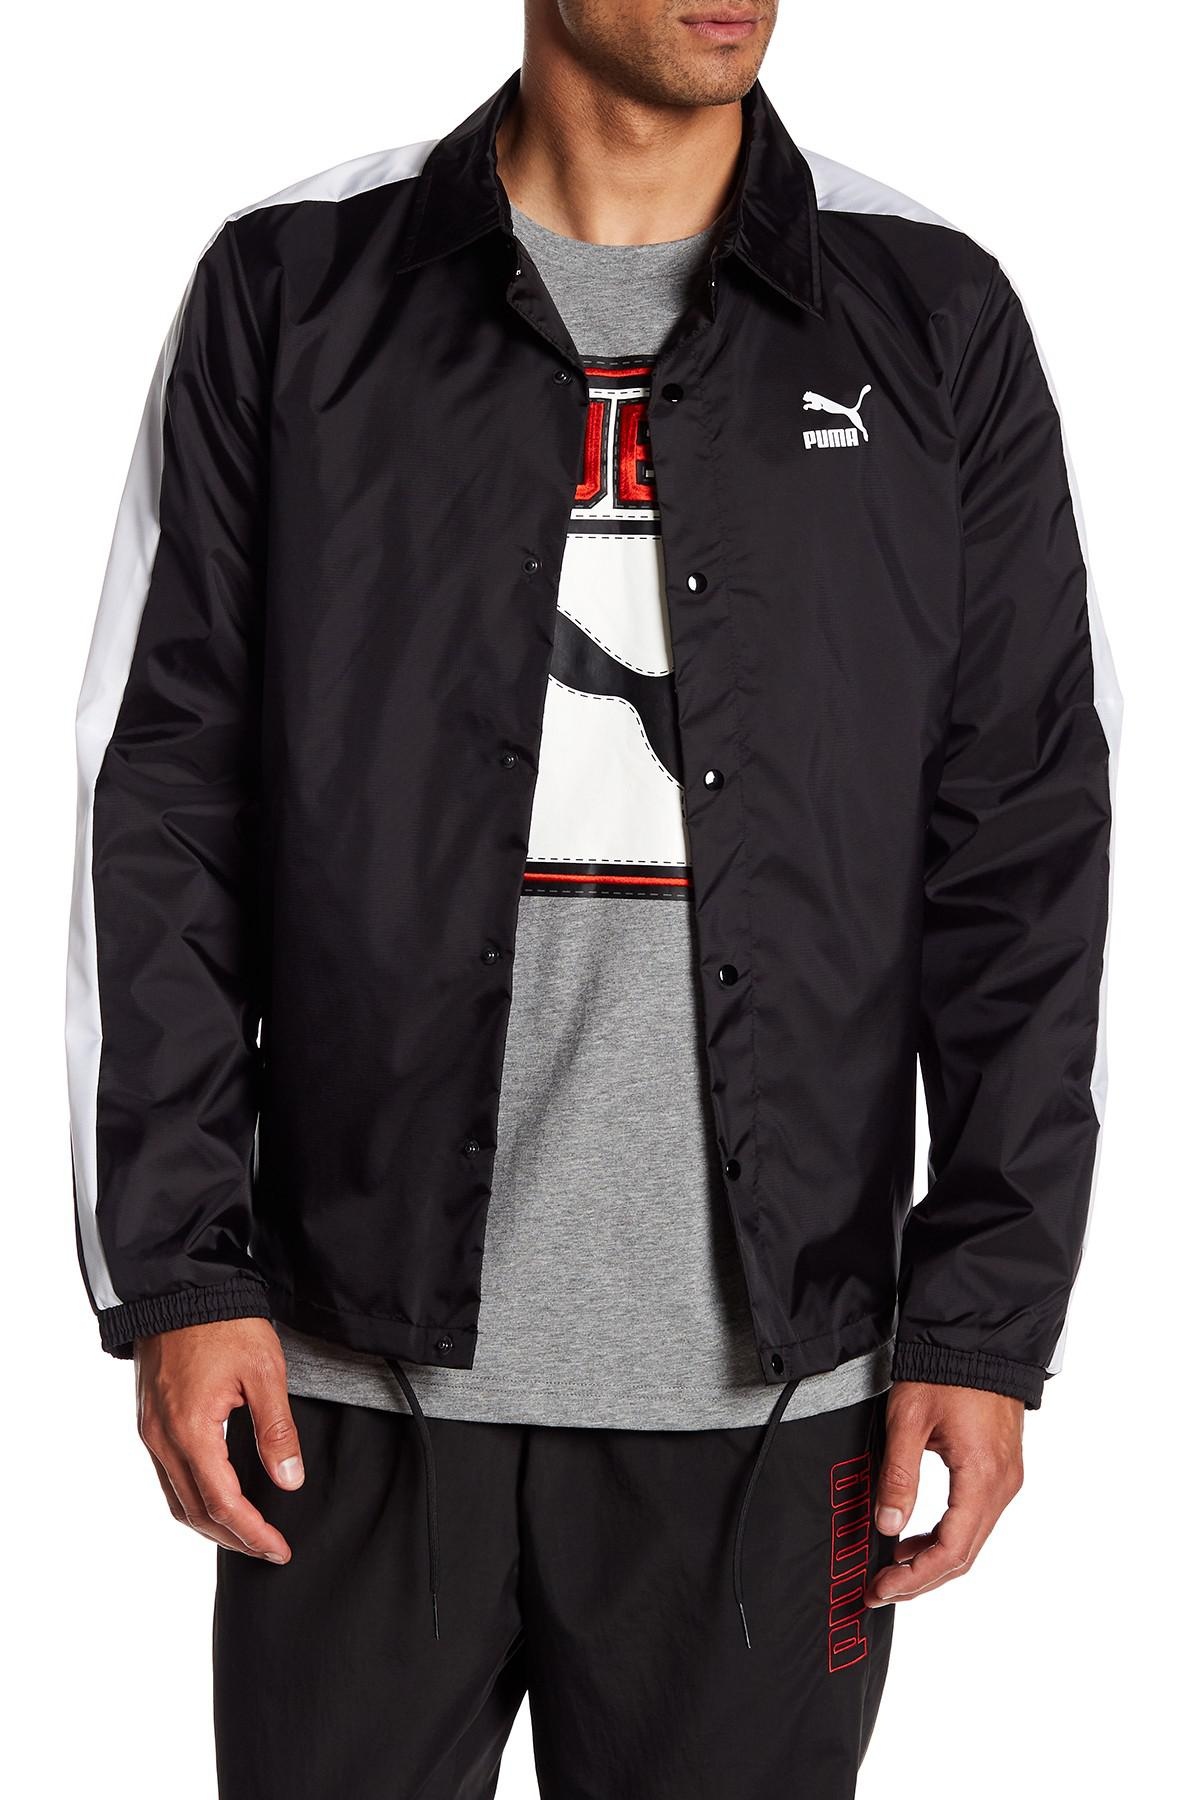 0771525c87a9 Lyst - Puma Archive Coach Jacket in Black for Men